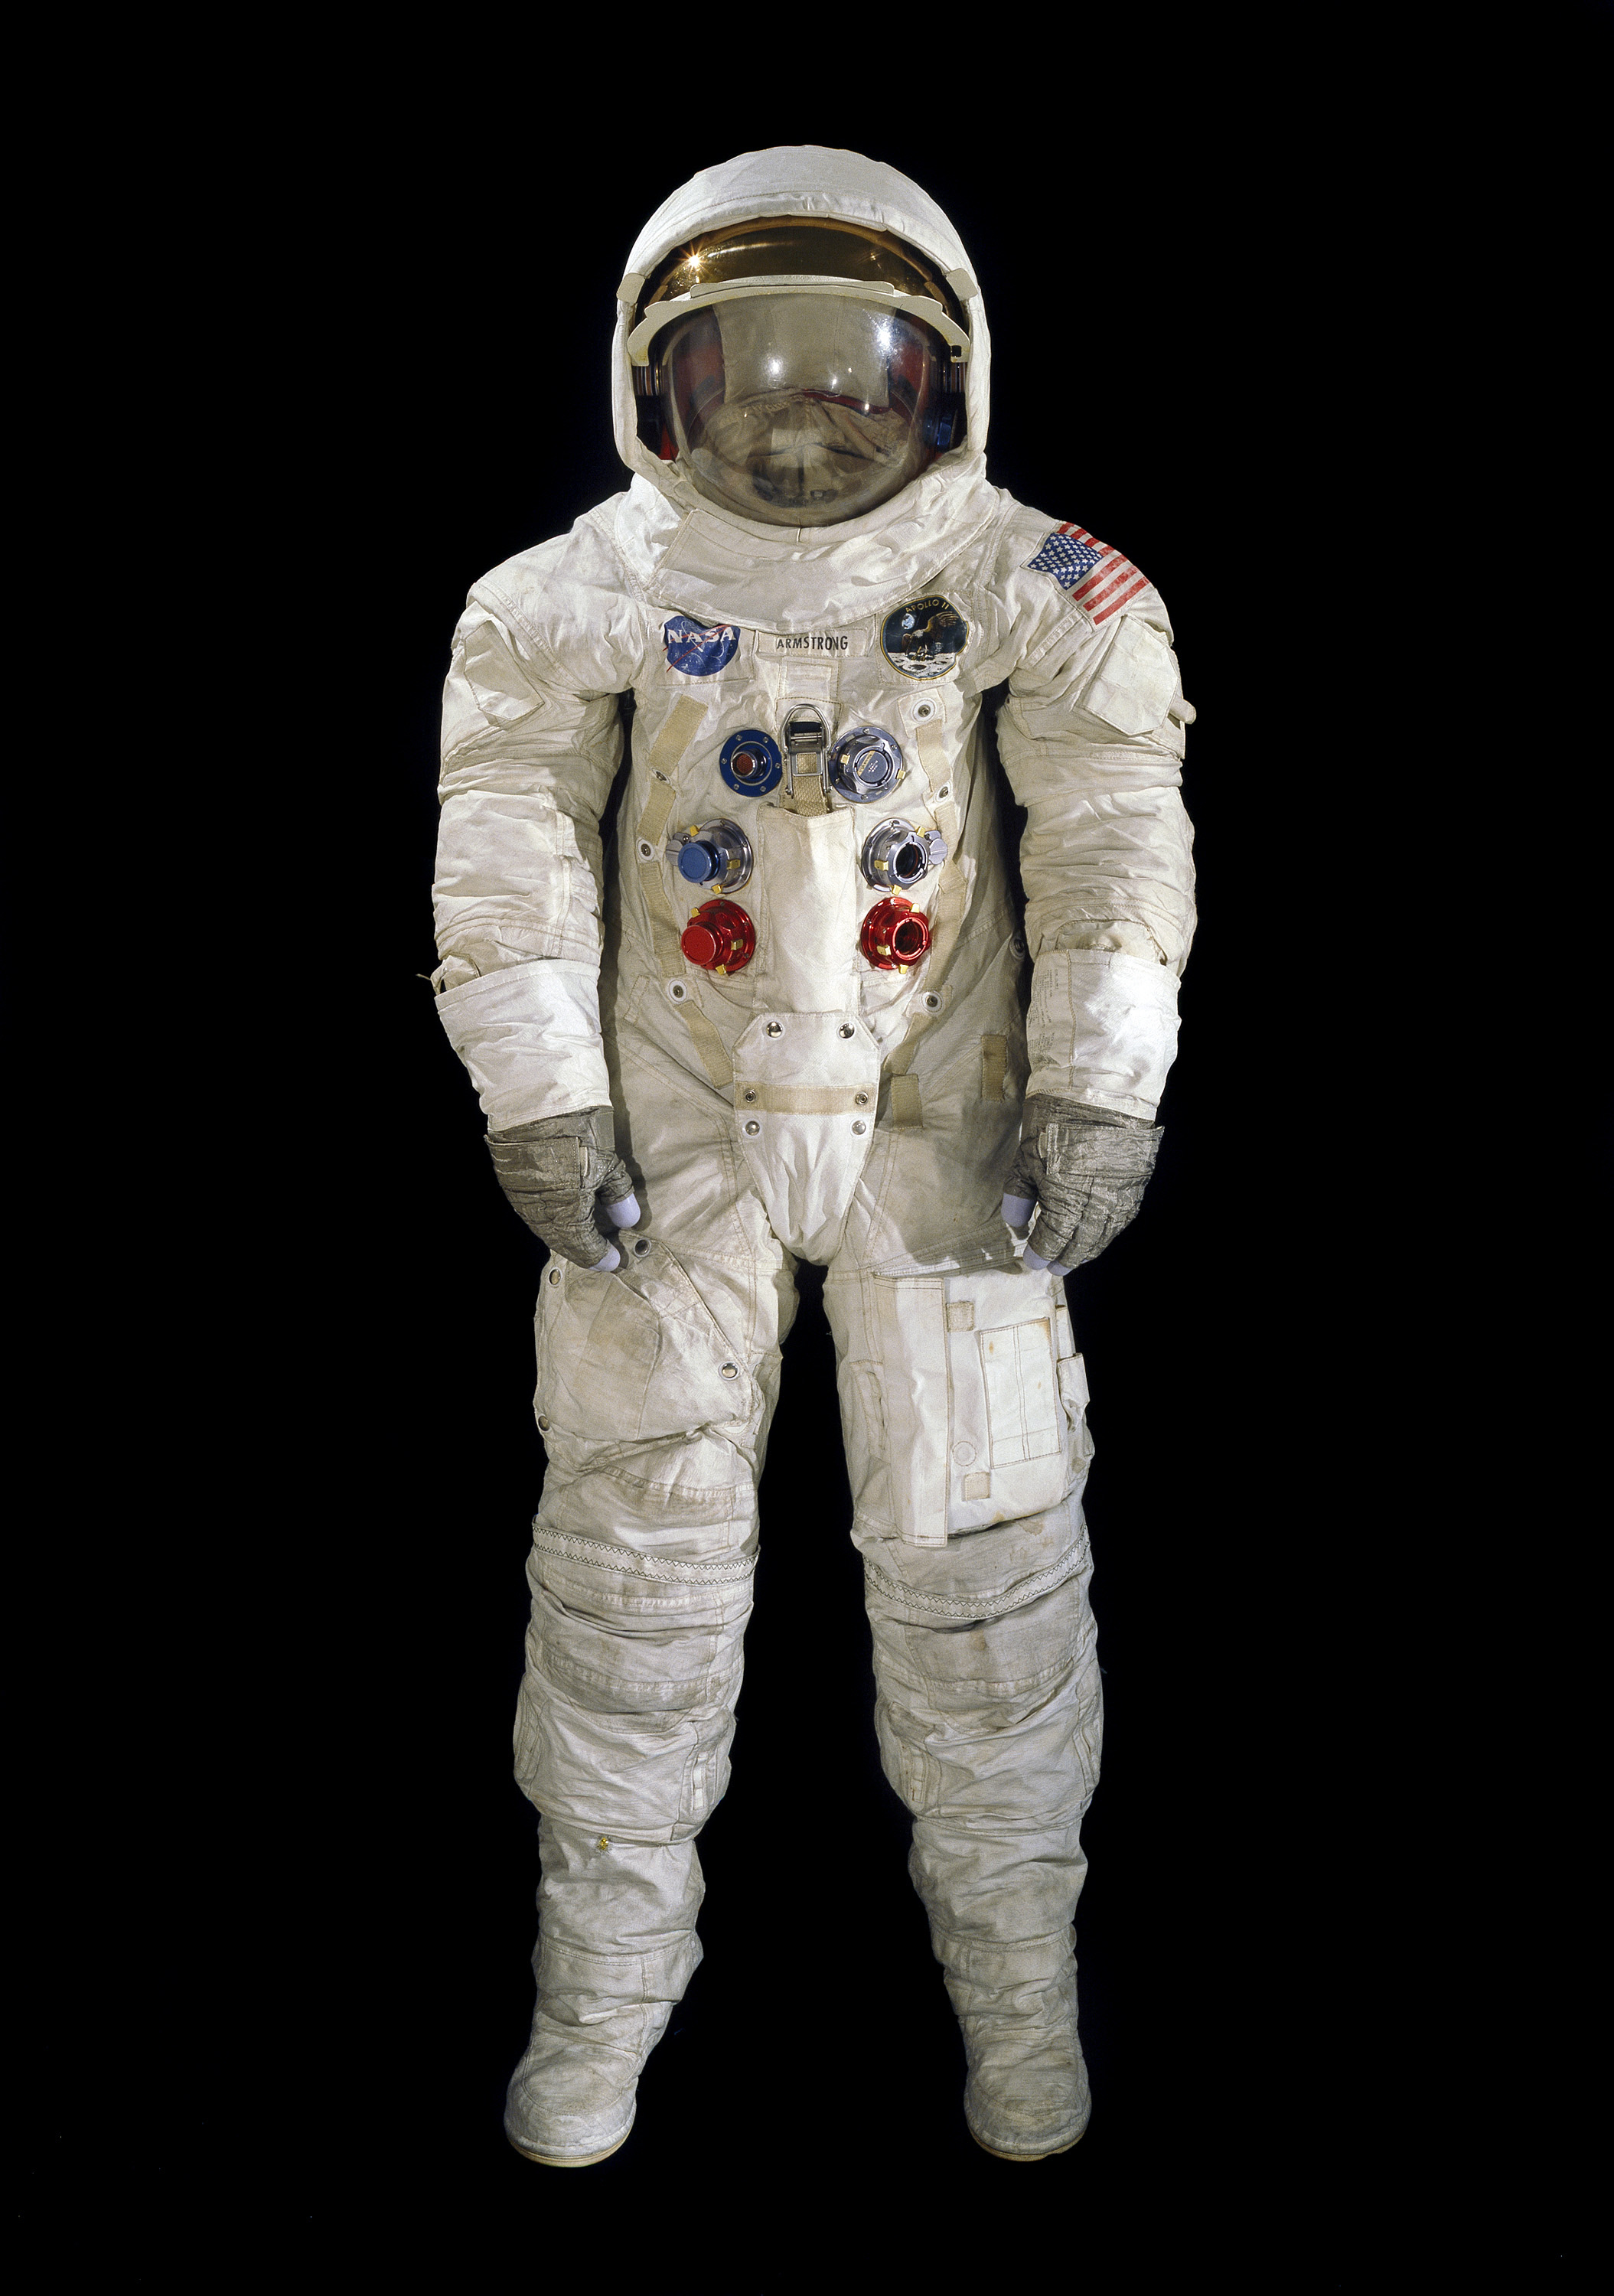 Pressure Suit A7 L Armstrong Apollo 11 Flown